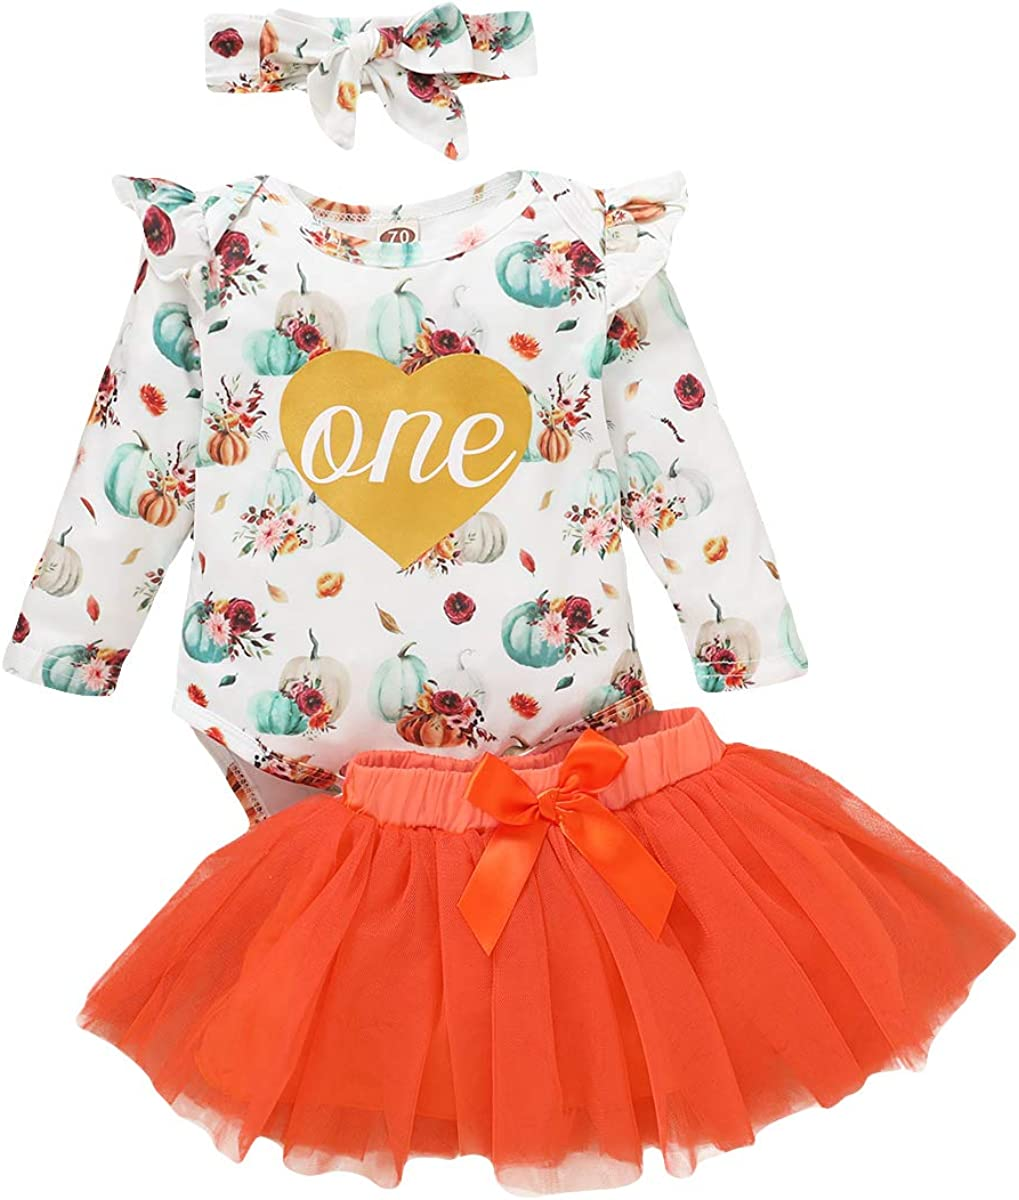 Toddler Baby Girl Clothes Floral Dress Lace Ruffle Sleeveless Backless Skirt with Headband 2Pcs Outfit